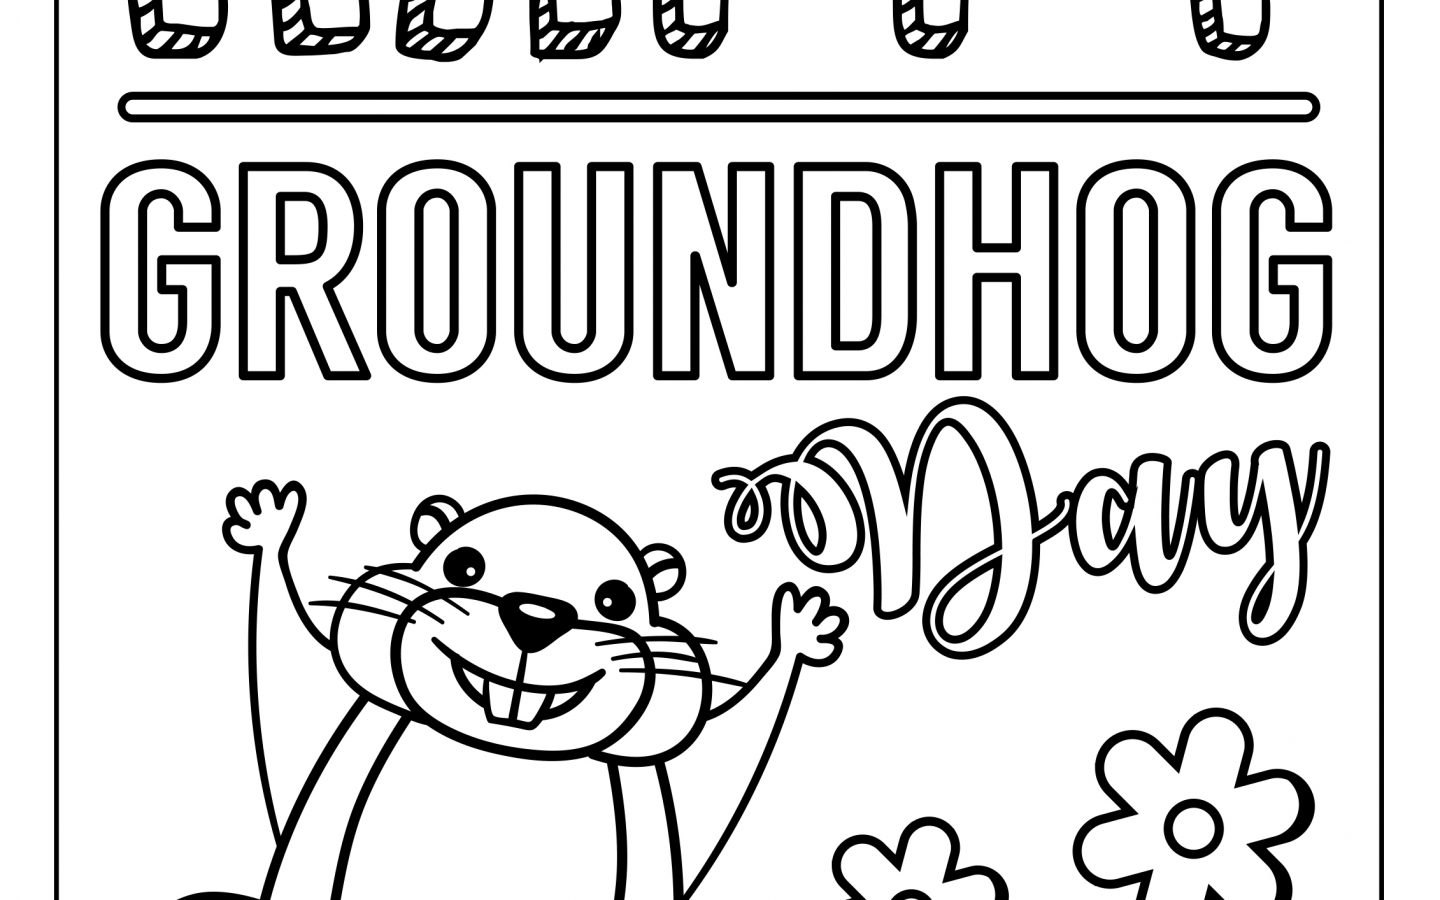 Groundhog Day Coloring Pages Free Printable Groundhog Day Coloring ...